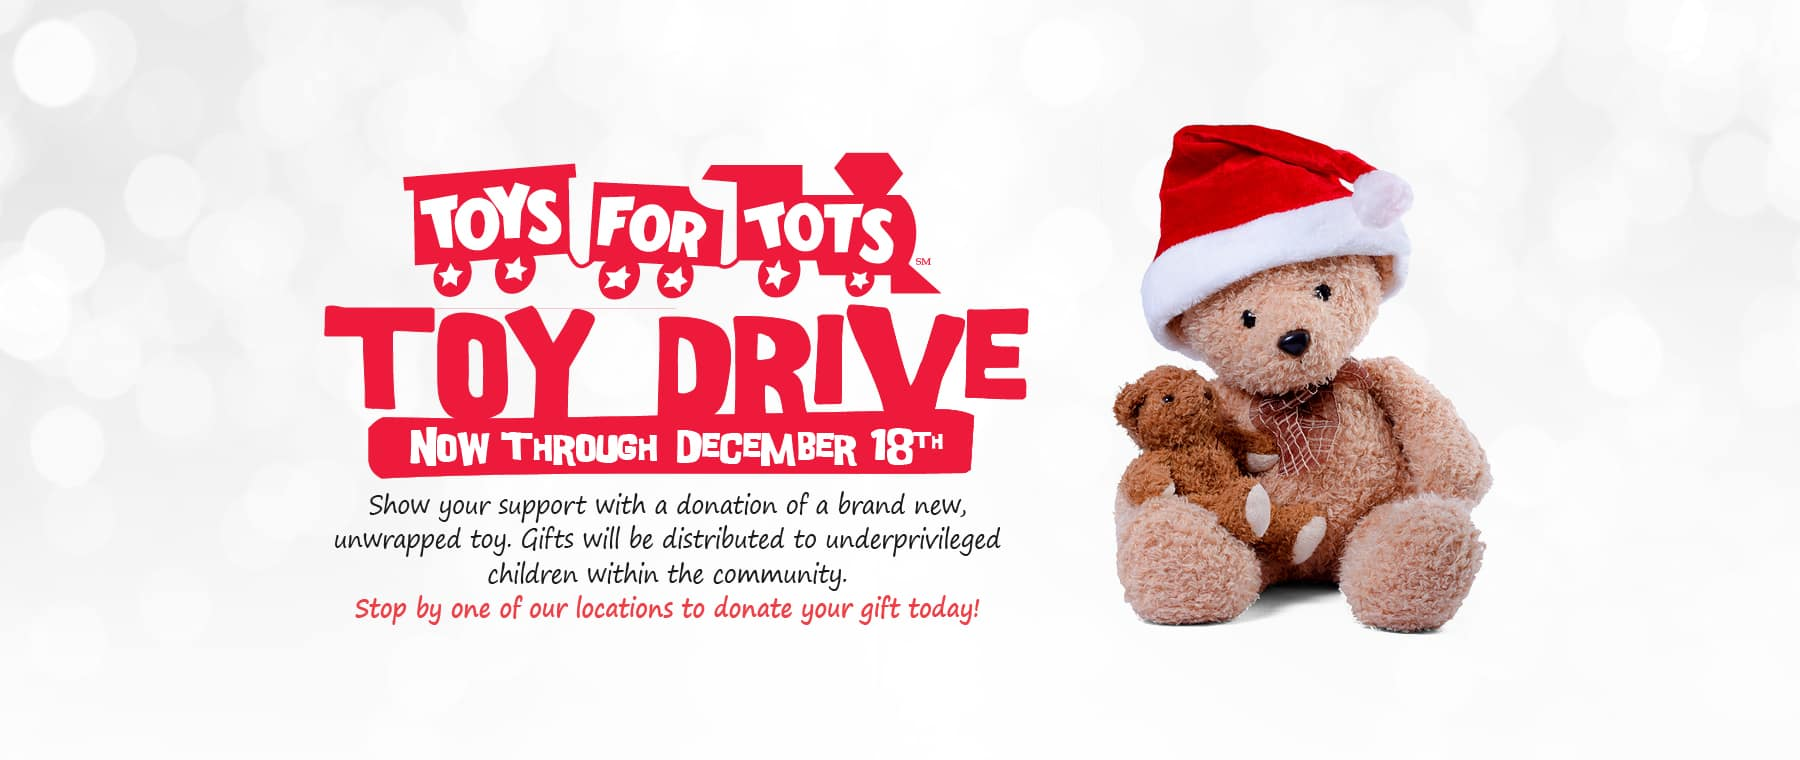 Toy Drive - Toys for Tots